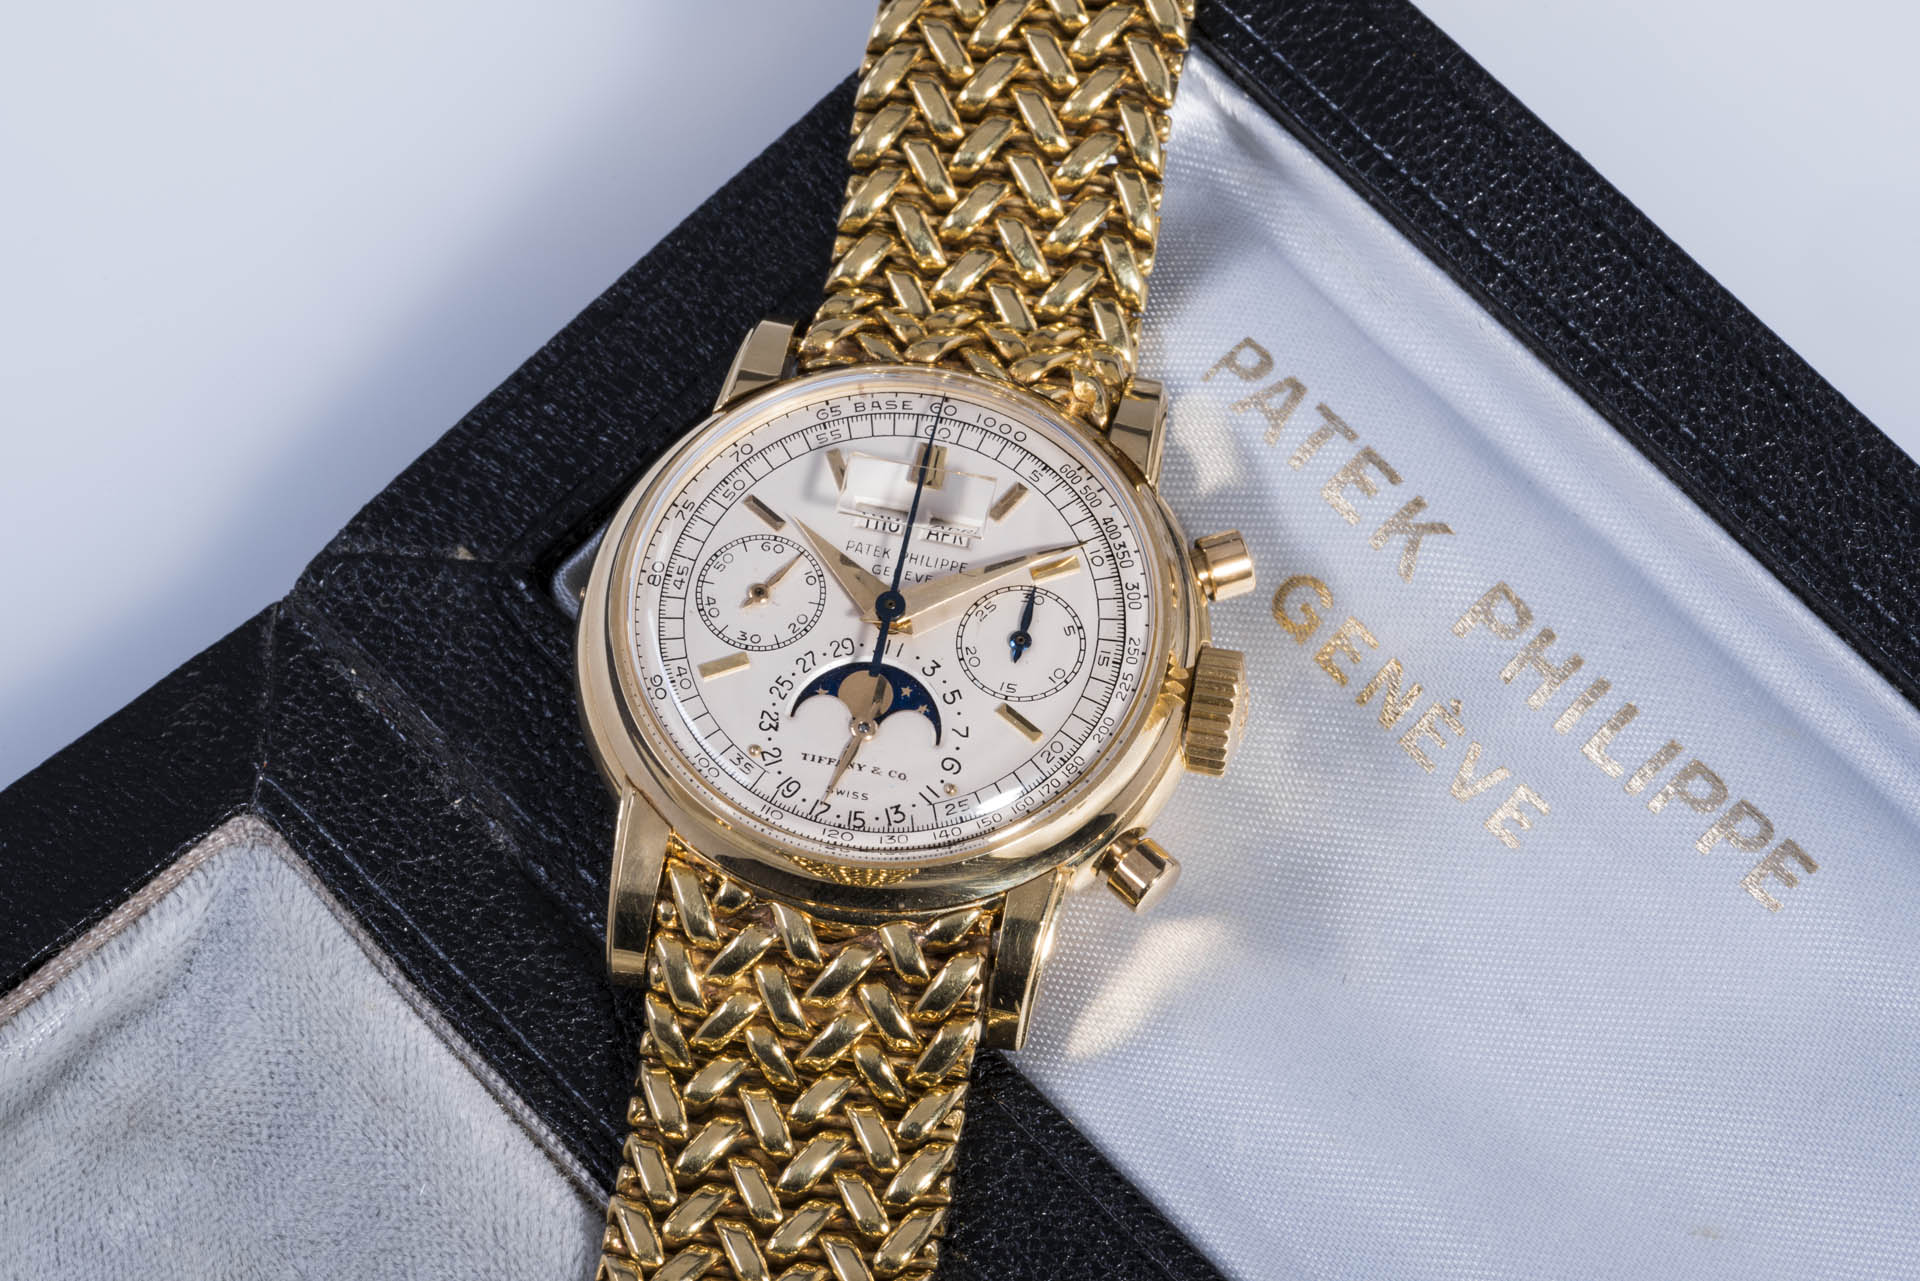 The Geneva Watch Auction Five